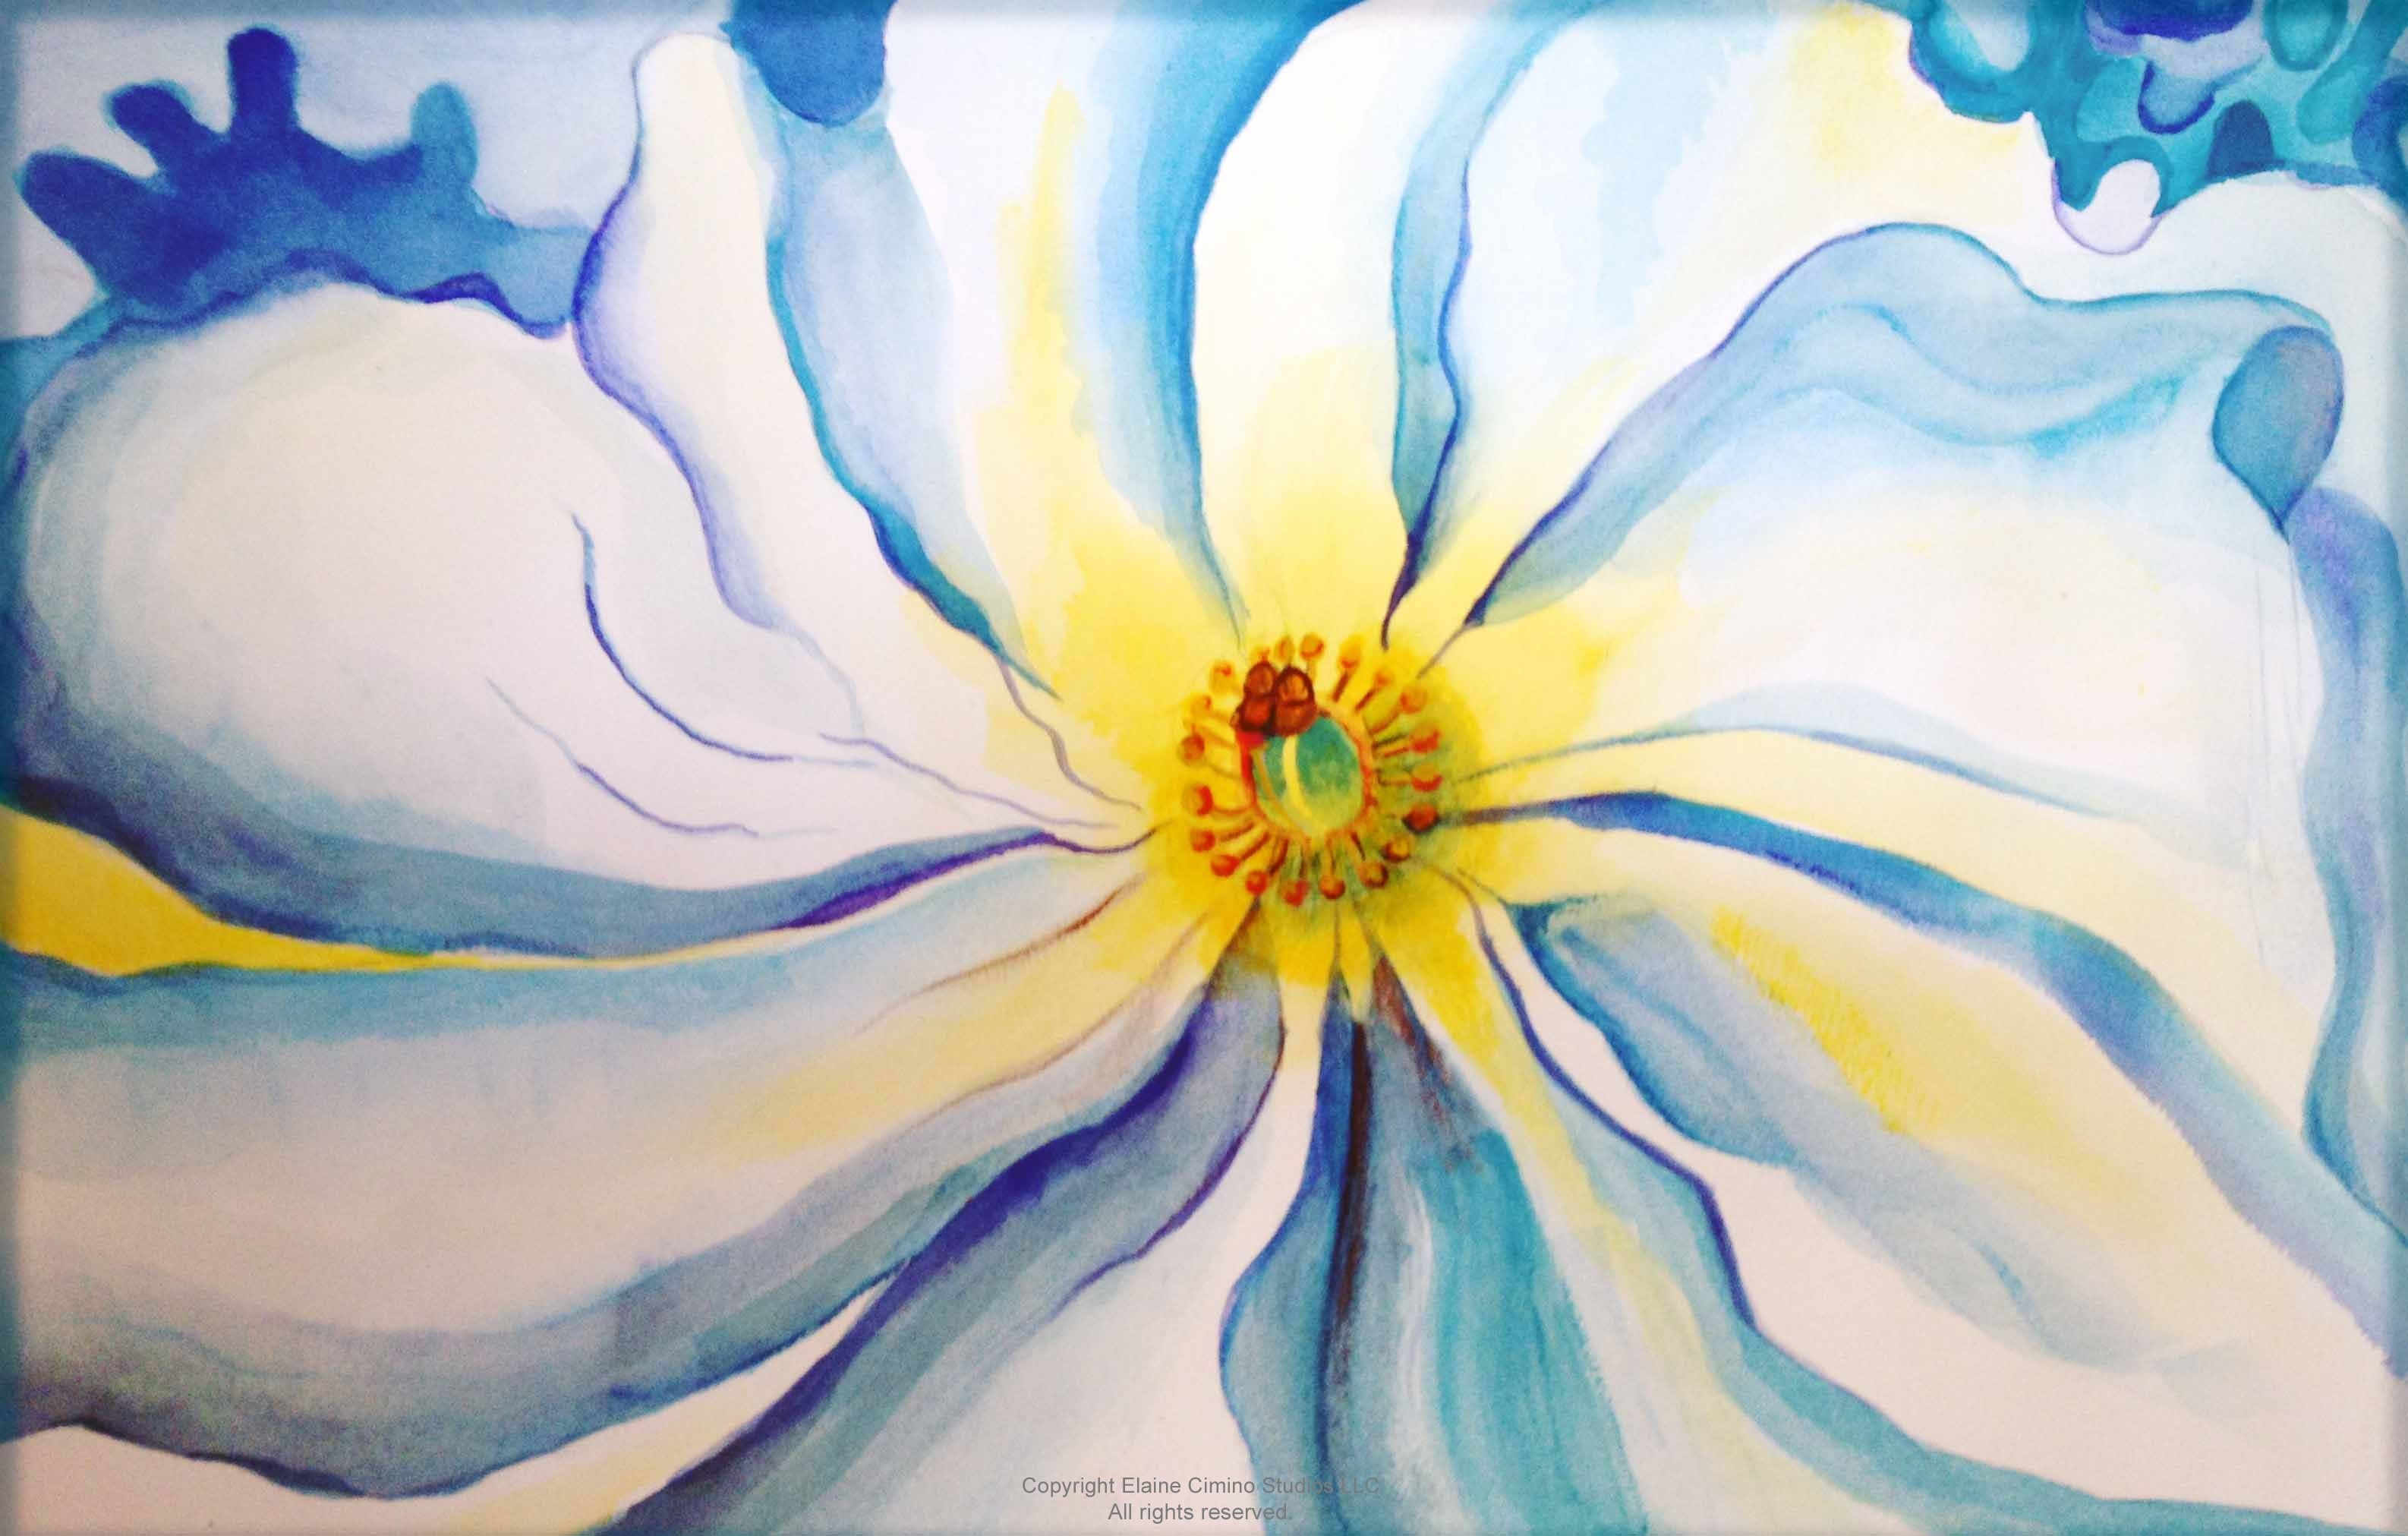 Flower of georgia o keeffe elaine cimino studioselaine Teach me how to draw a flower